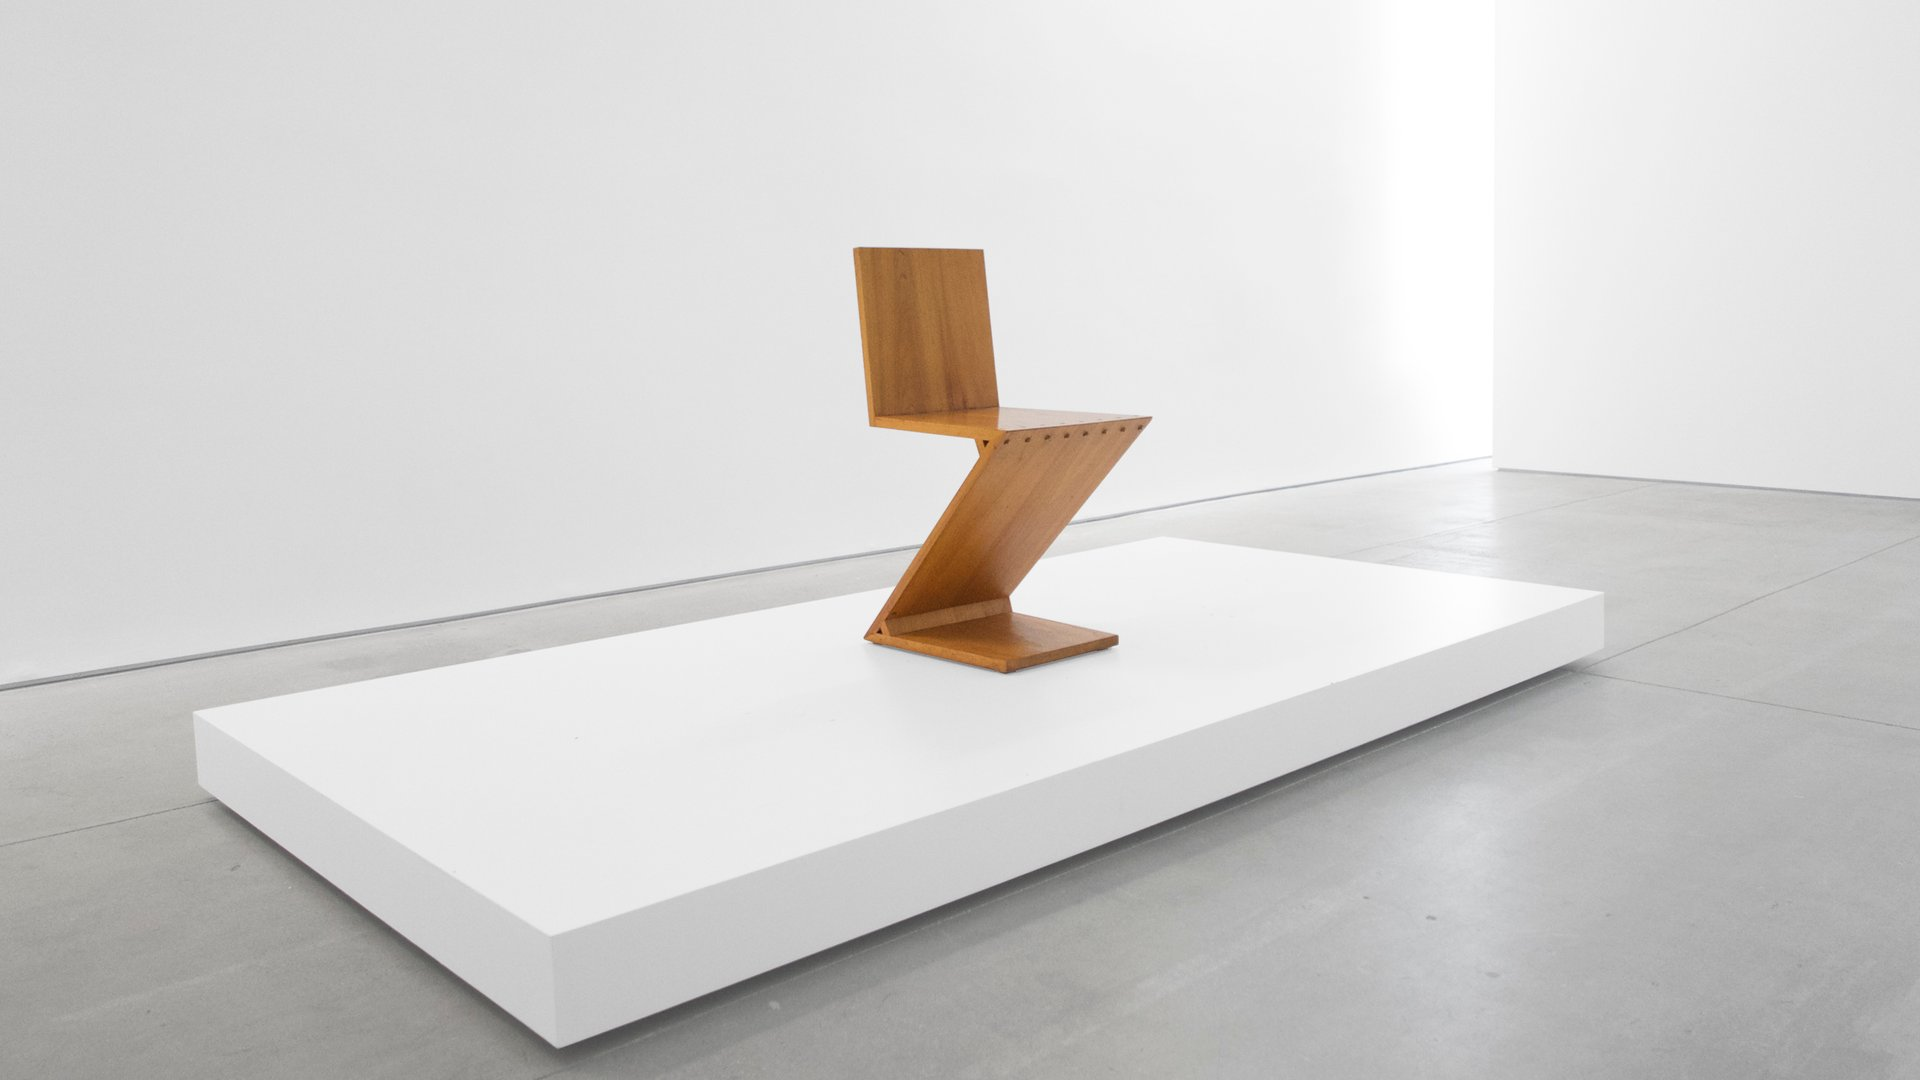 Zig zag chair by gerrit rietveld 1969 for sale at pamono for Chaise zig zag